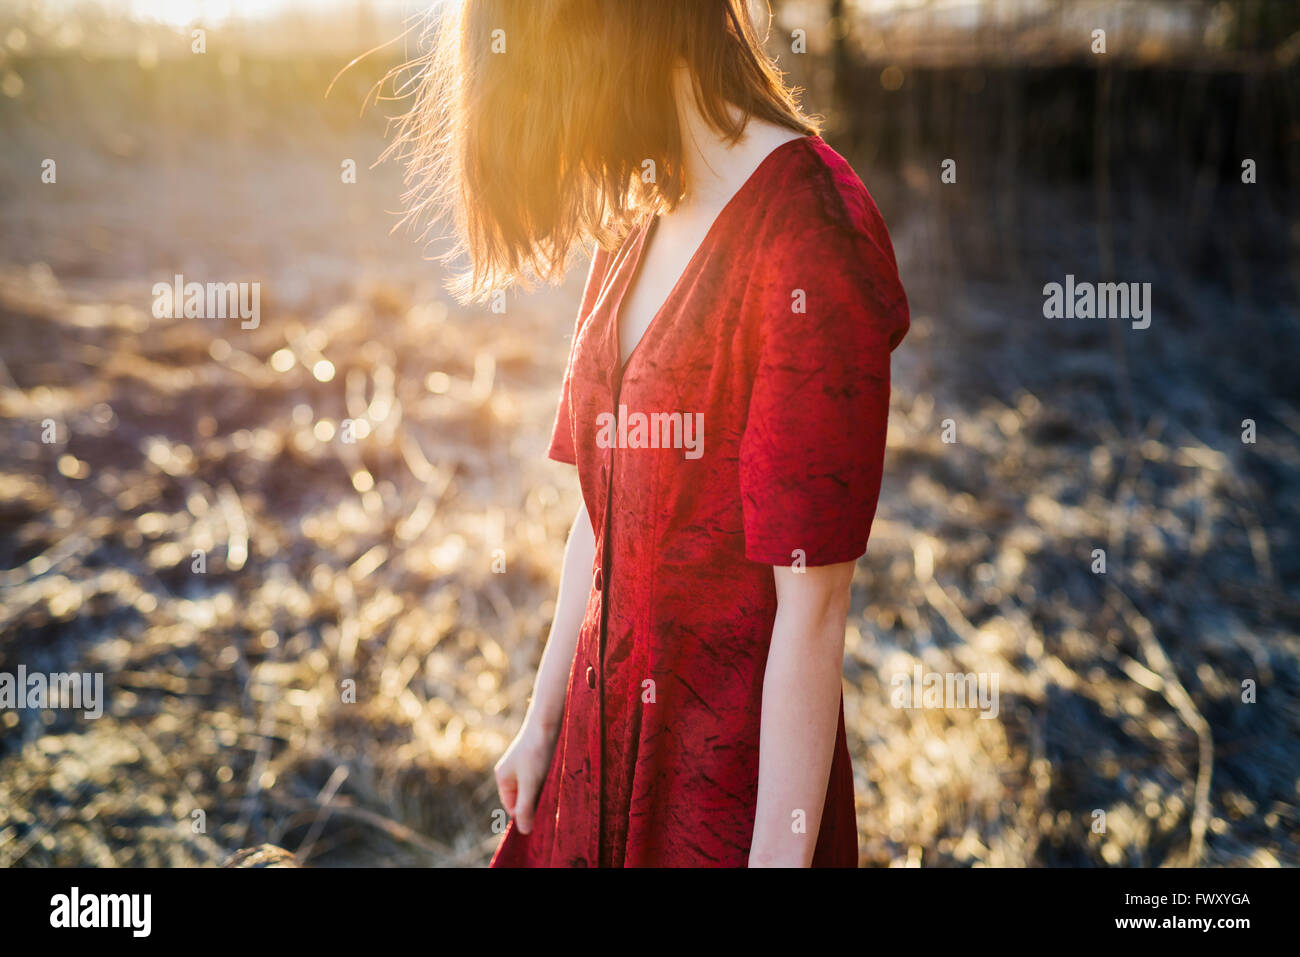 Finland, Varsinais-Suomi, Young red hair woman in red dress standing in sunlight Stock Photo